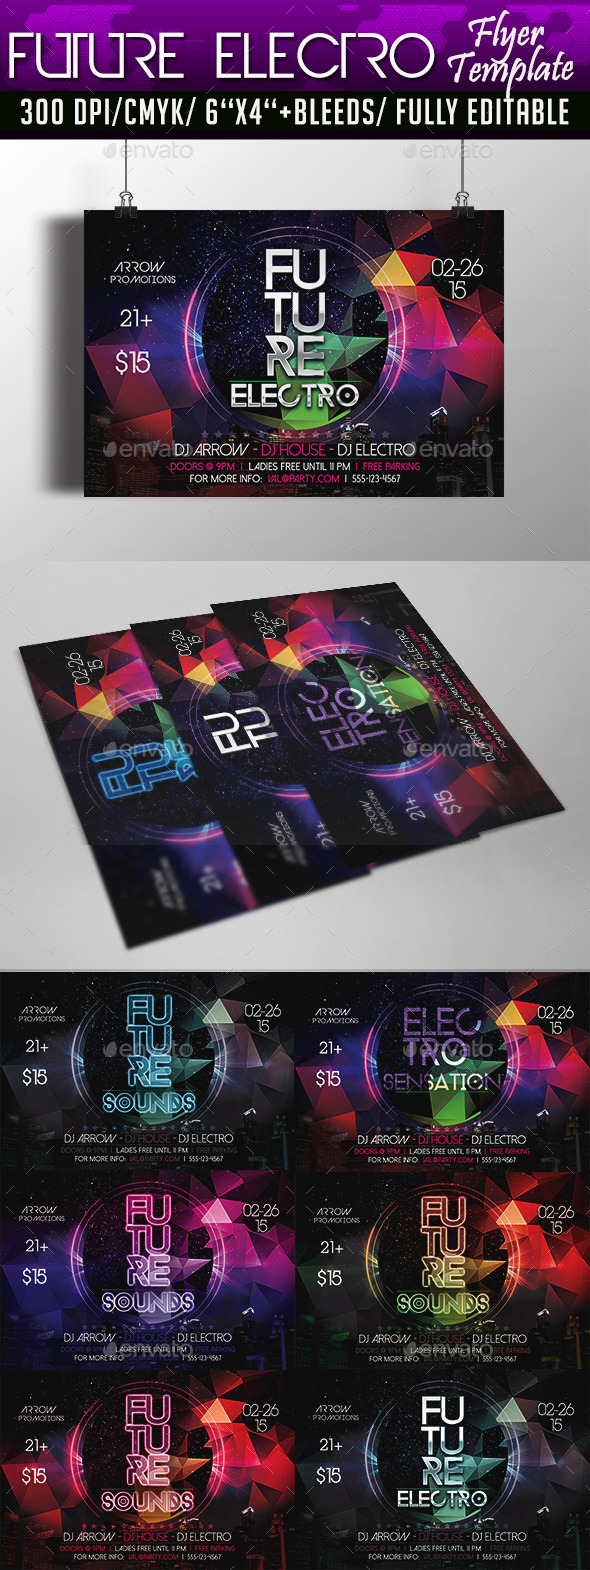 Future Electro Flyer Template - Clubs & Parties Events